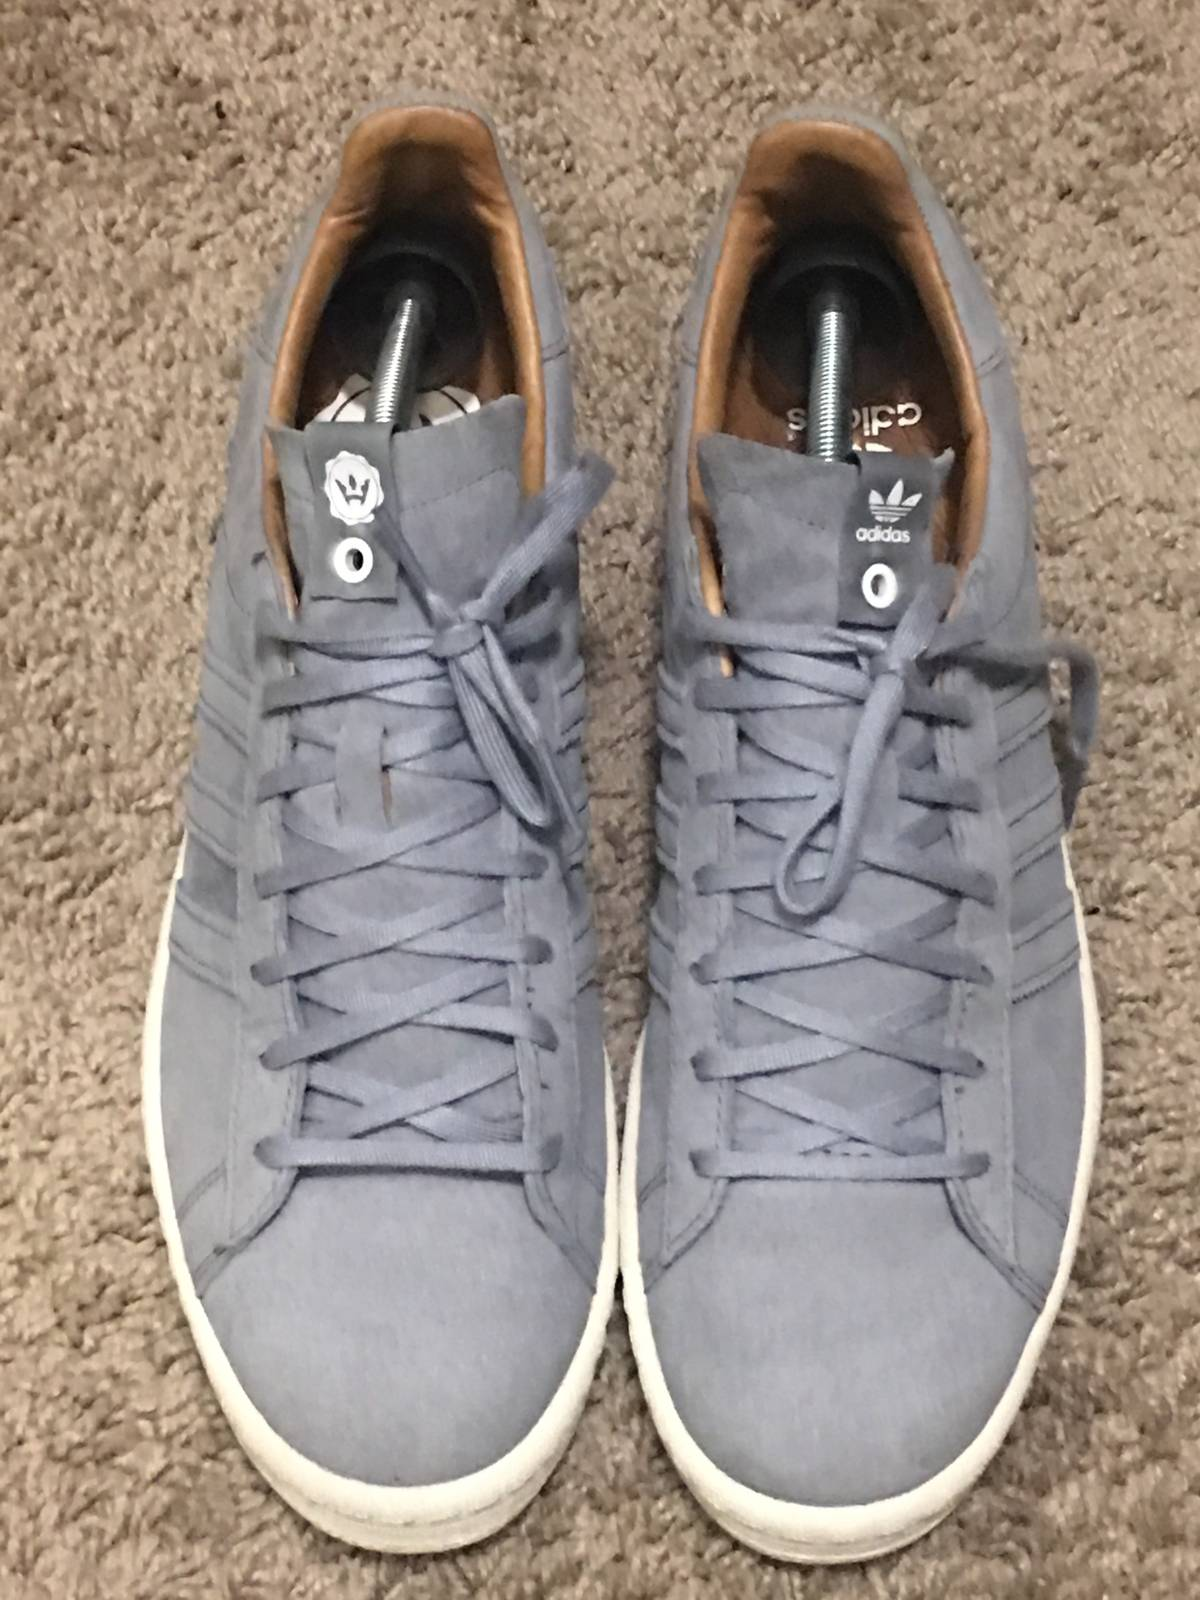 timeless design d8acb 4fcb8 ... Adidas Adidas Consortium x HighSnobiety Campus 80s B24113 Size 10.5 -  Low-Top Sneakers for ...